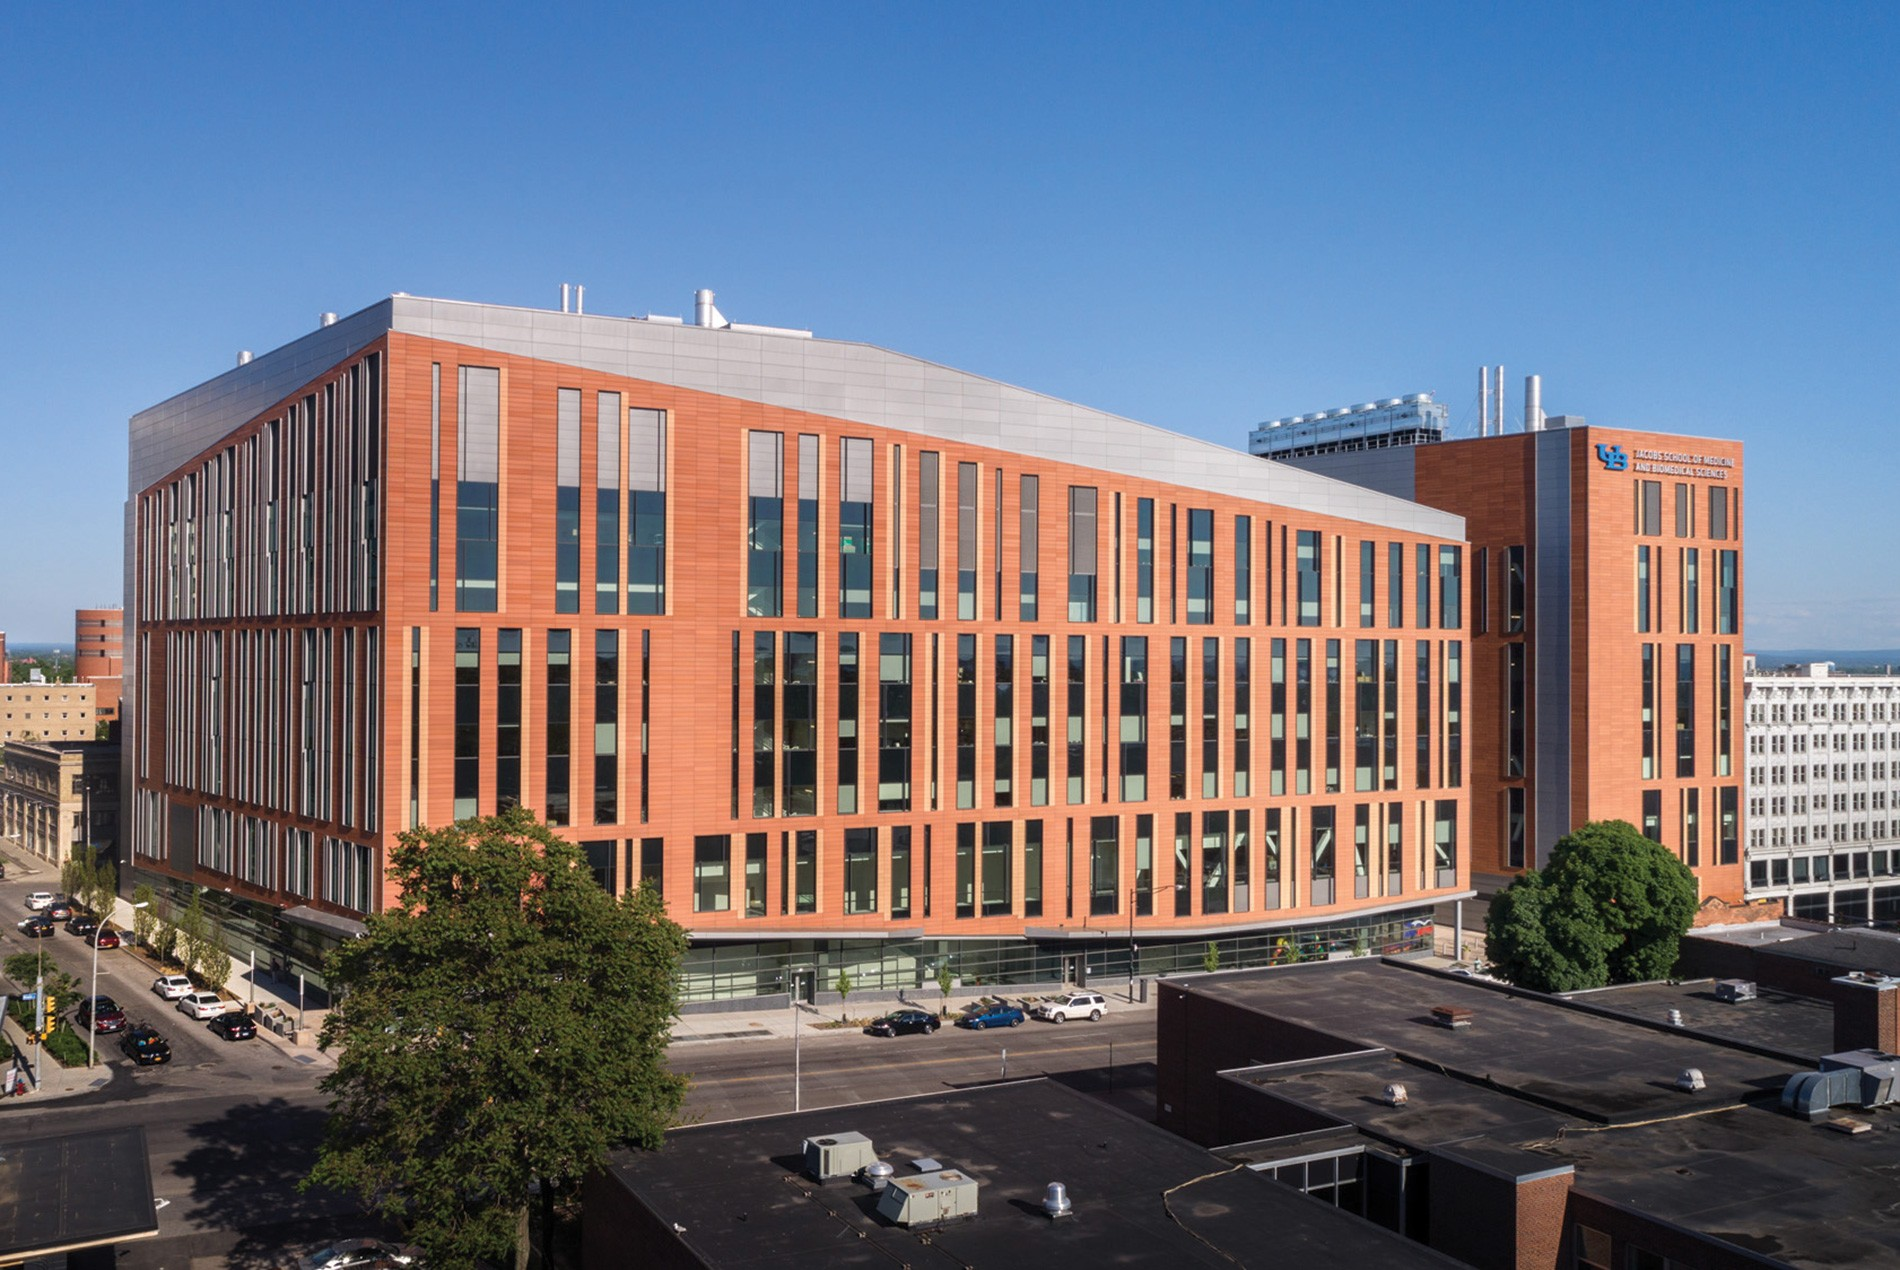 15 Projects by HOK Architects every Architect should know about - University at Buffalo Jacobs School of Medicine and Biomedical Sciences